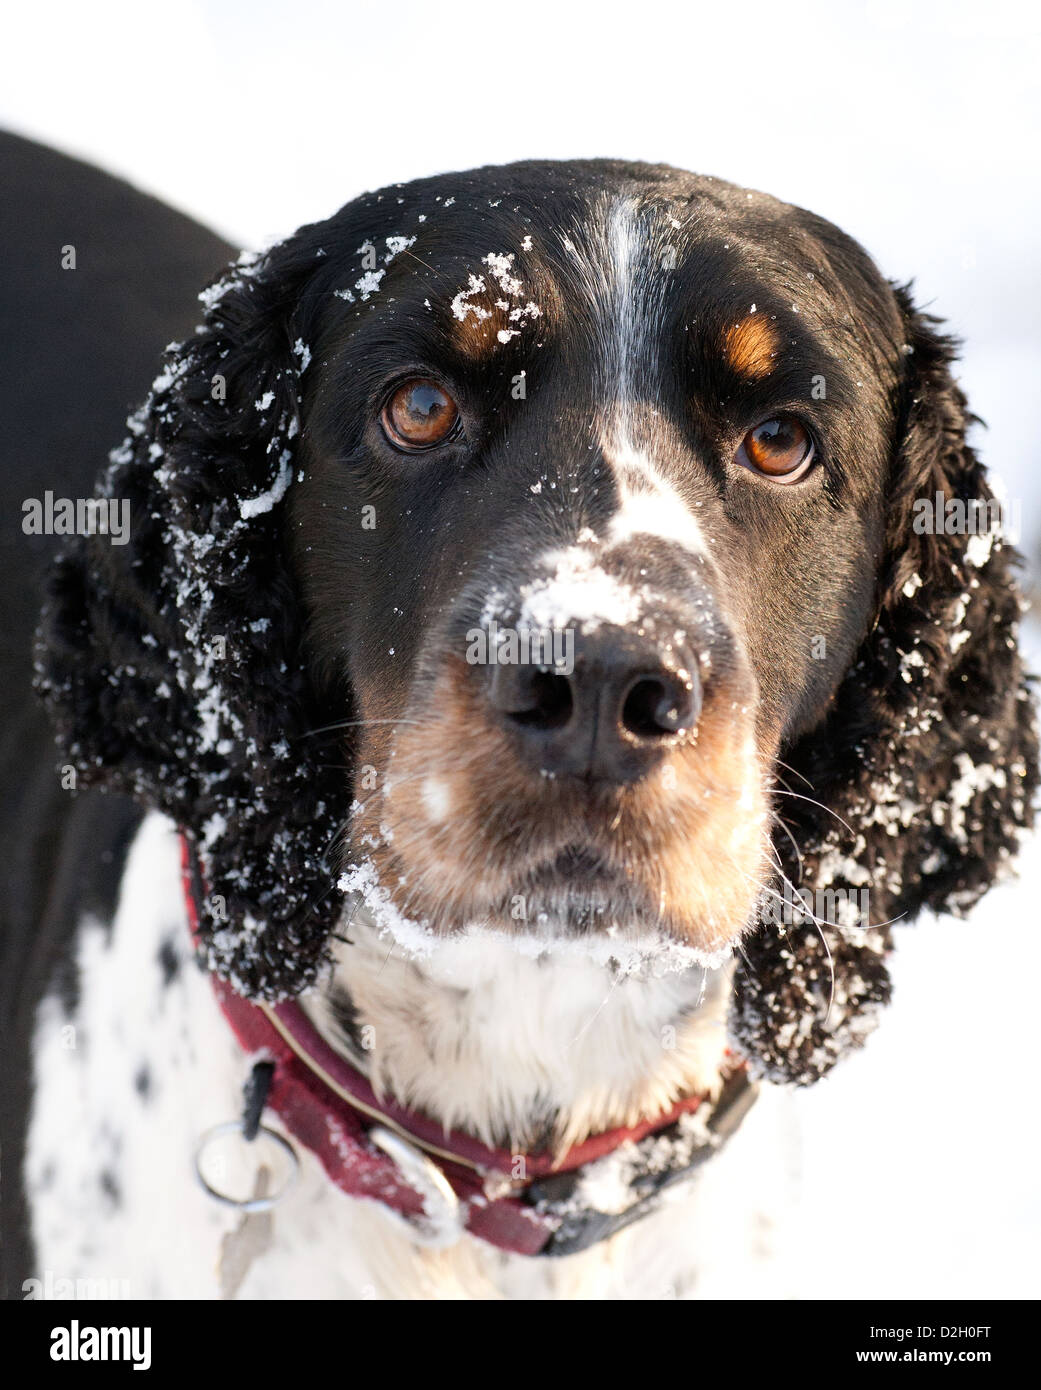 Snow dog. A springer spaniel dog who enjoys the delights of winter snowfall, playing out and rolling in the snow - Stock Image